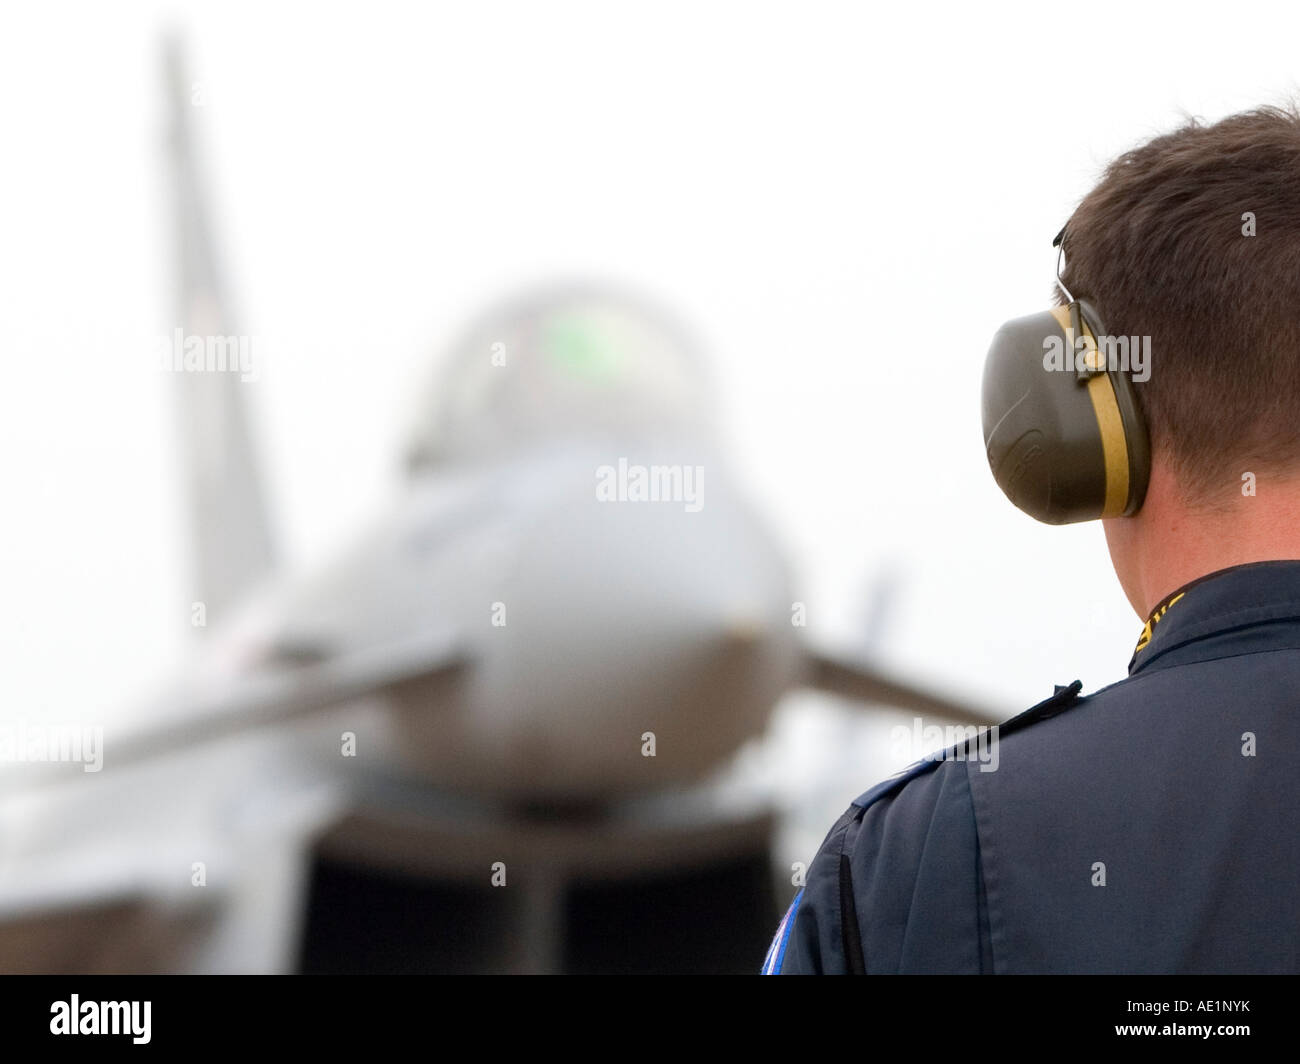 Royal Air Force Eurofighter Typhoon T1 twin-engine multi role canard delta strike fighter aircraft with groud crew - Stock Image